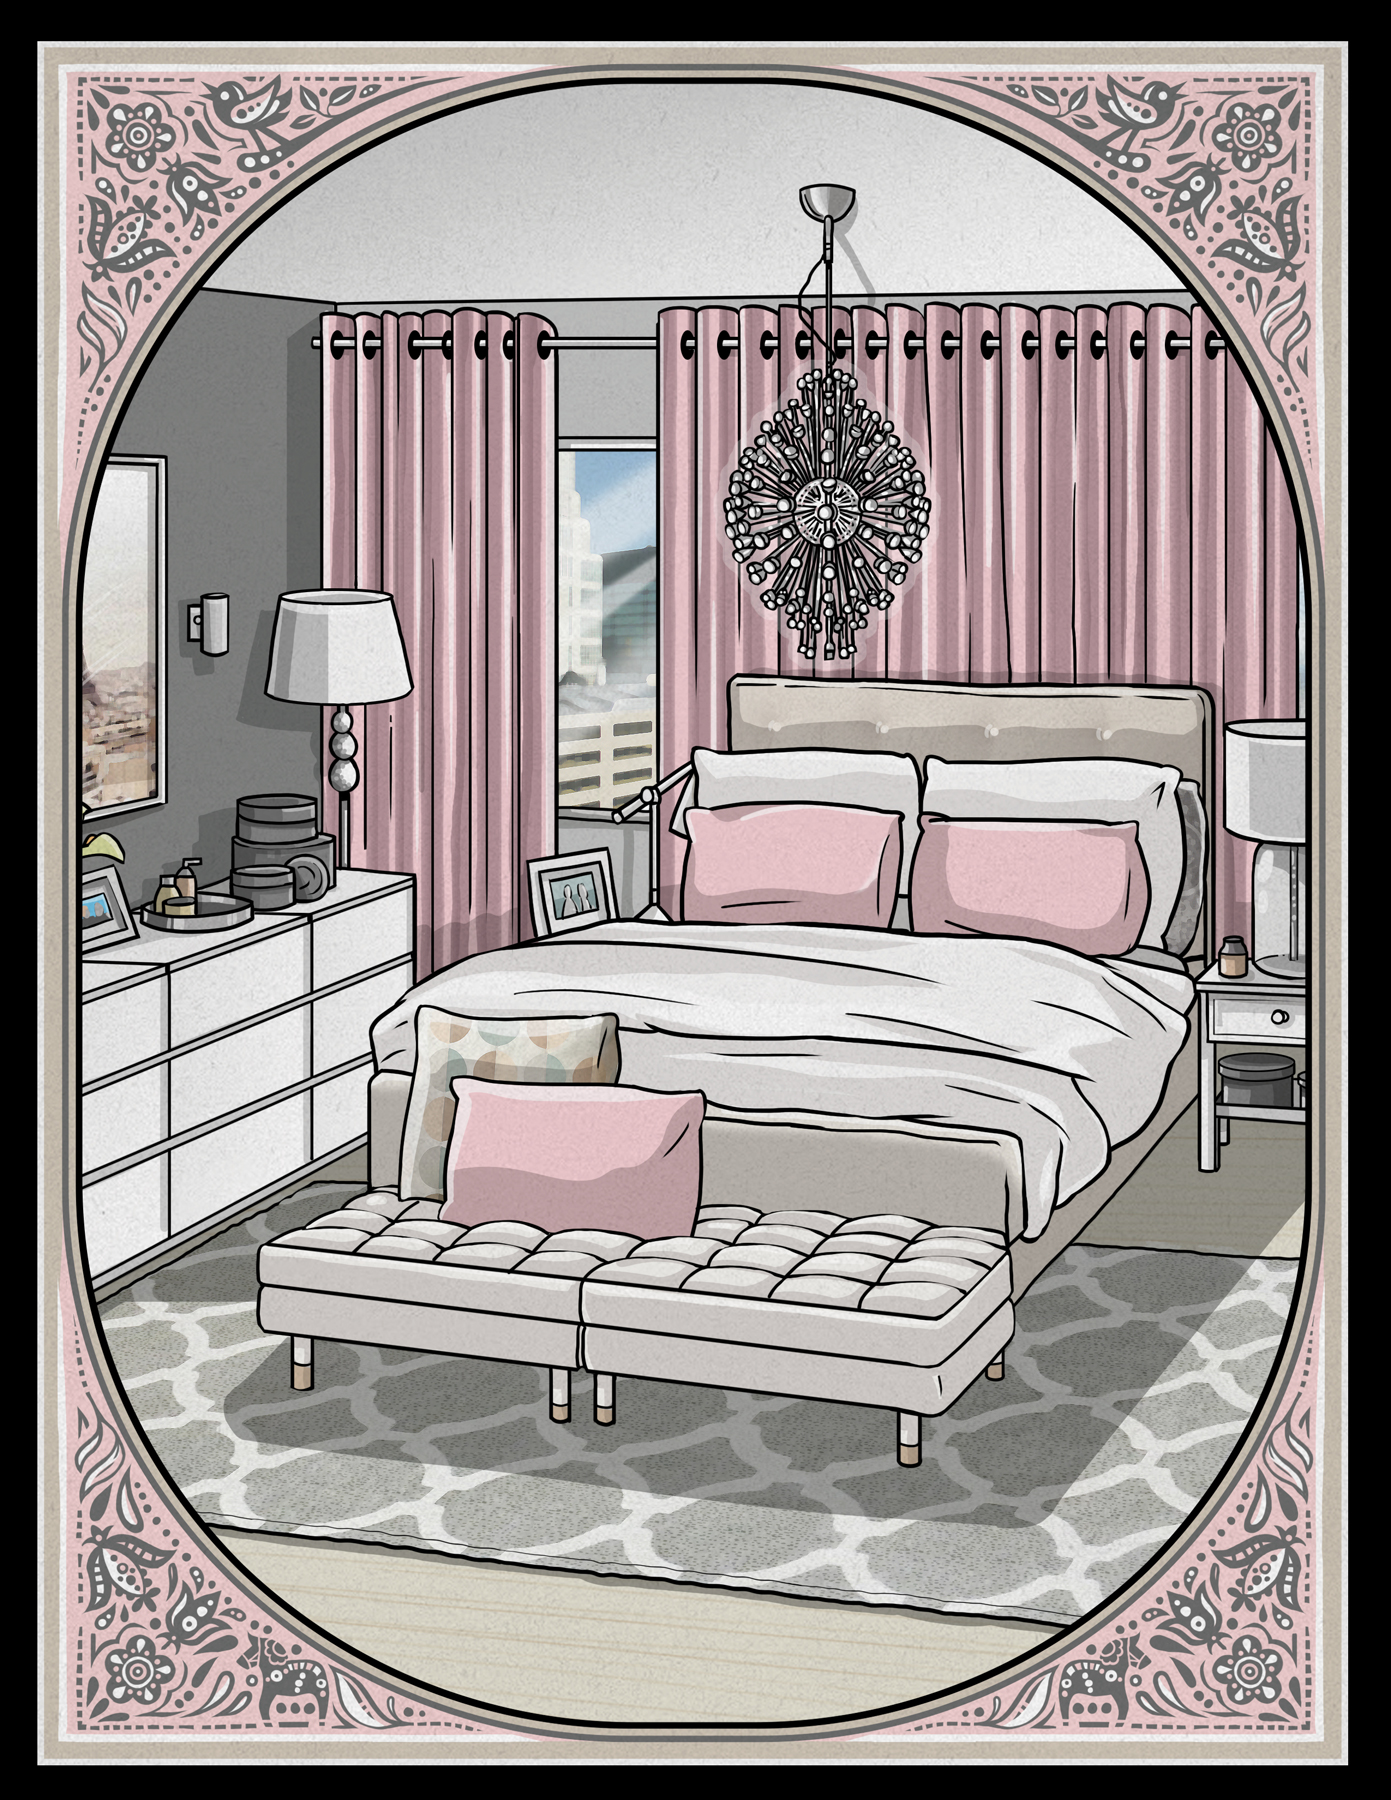 The Ikea Kama Sutra Will Help You Find Your Bedroom Nirvana Real Simple